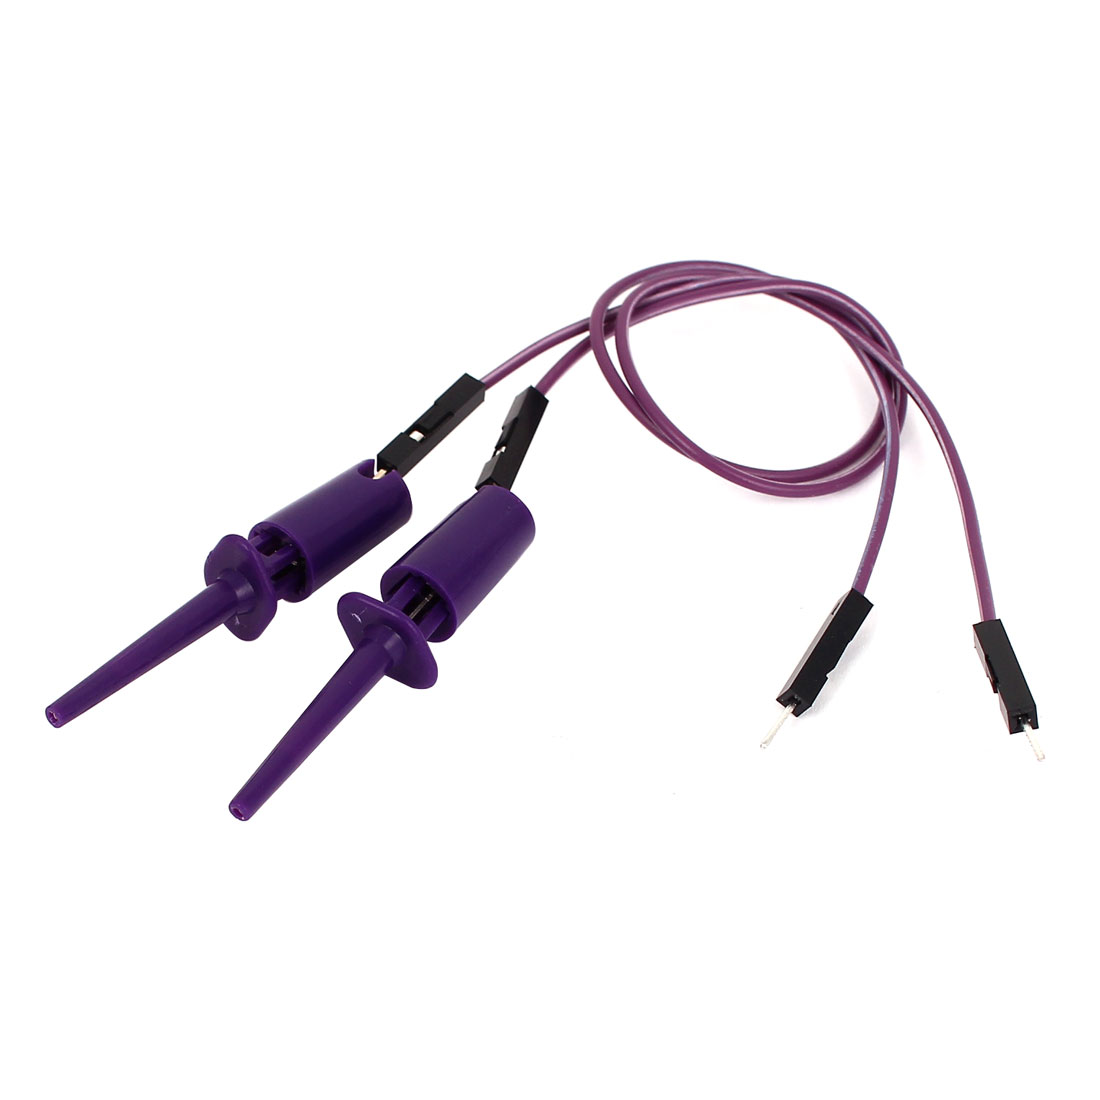 2pcs Purple Plastic Covered Insulation F/M Testing Test Lead Hook Clip Clamp